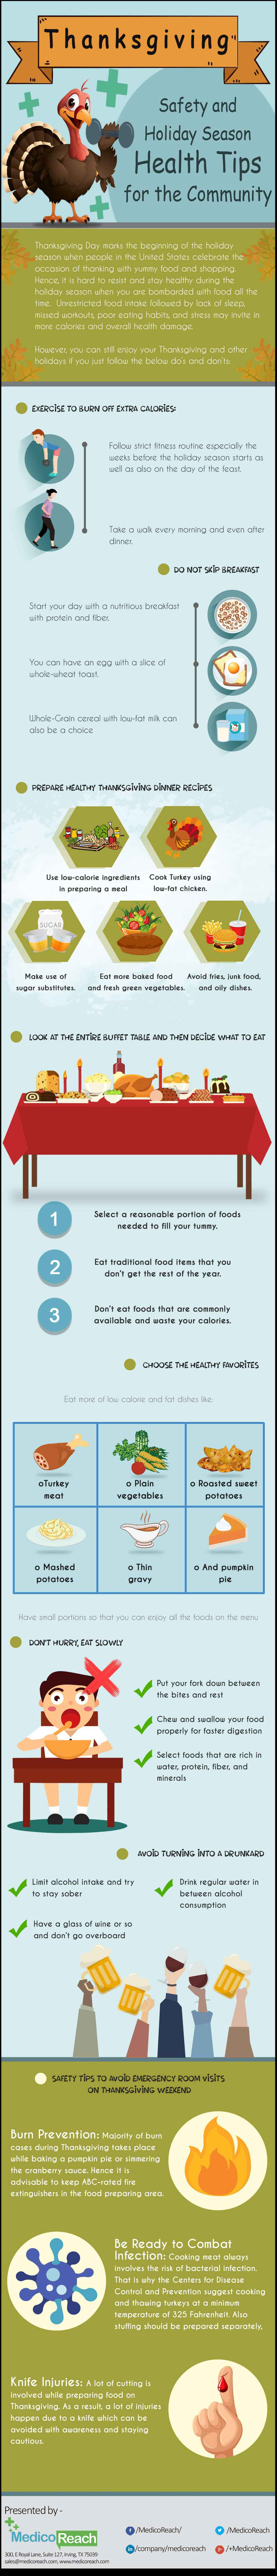 Thanksgiving Safety and Holiday Season Health Tips for the Community - MedicoReach